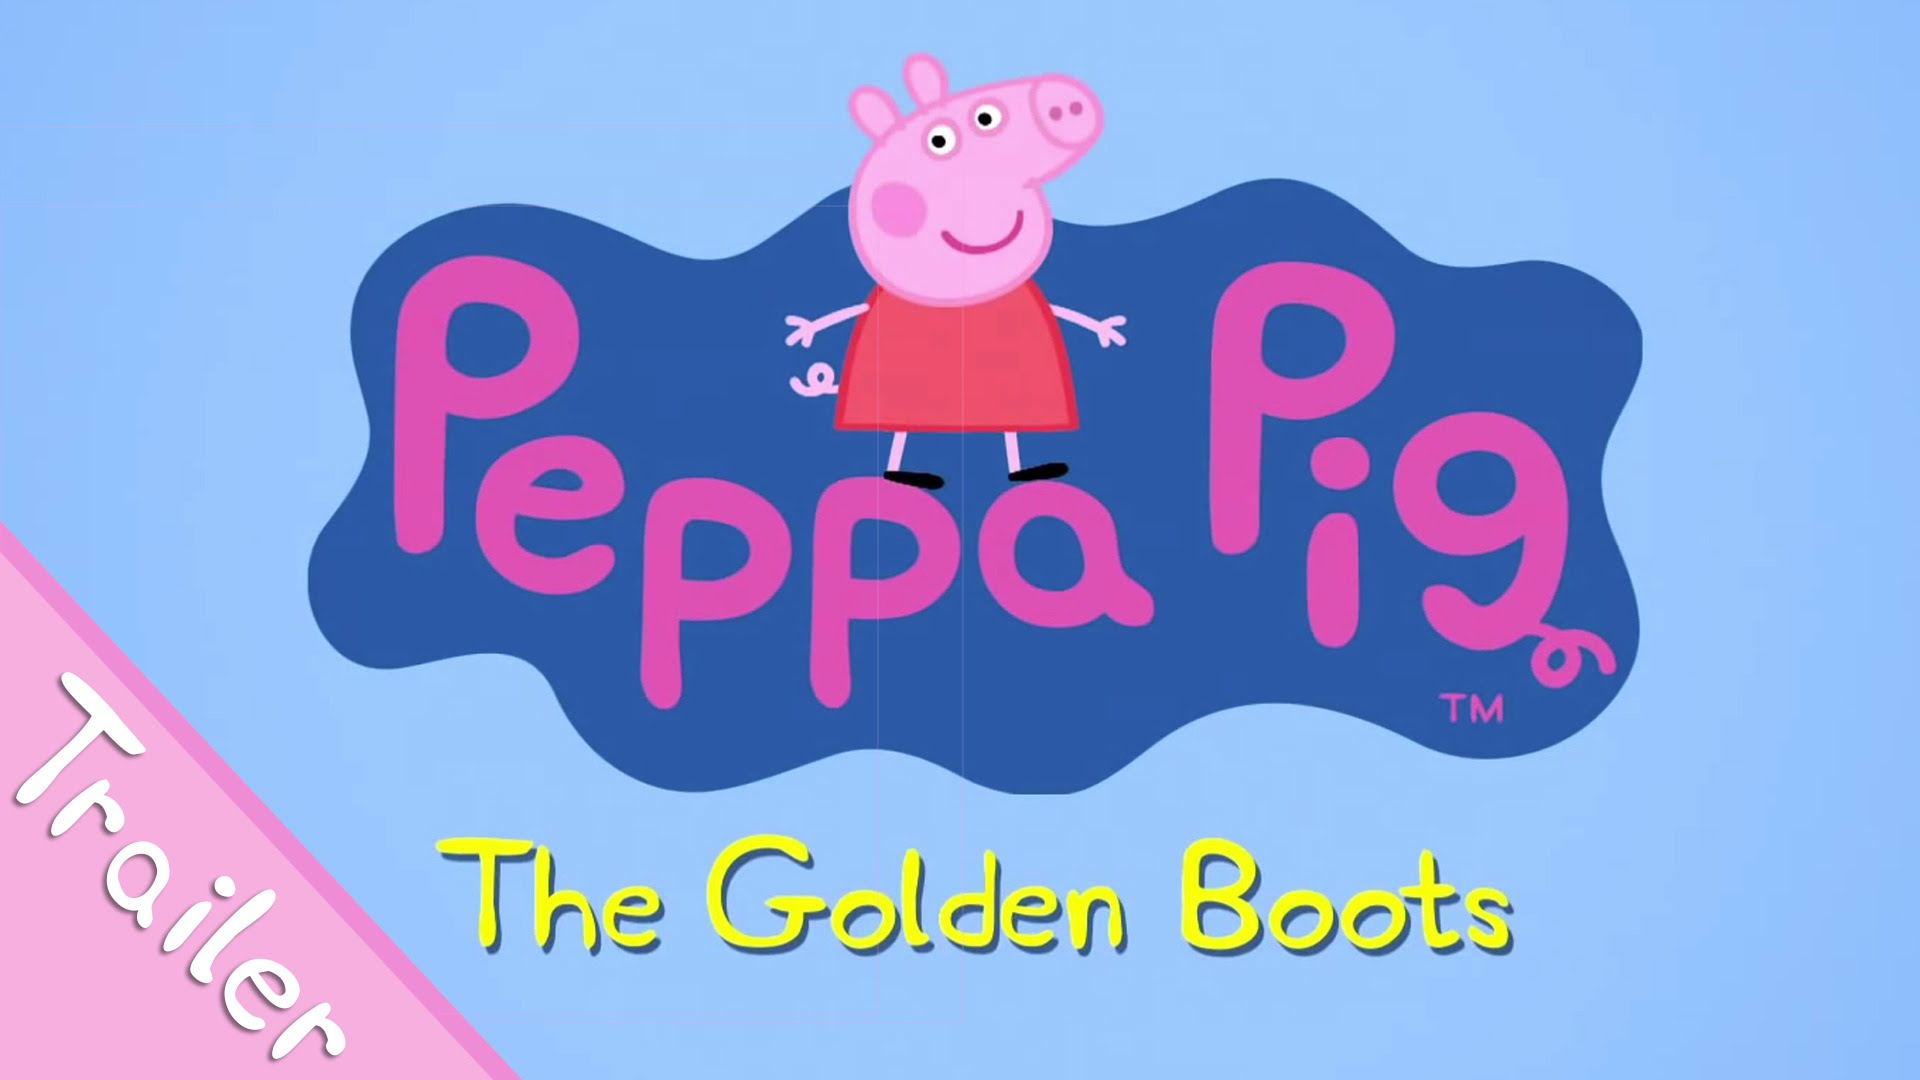 Peppa Pig heads for Wrexham